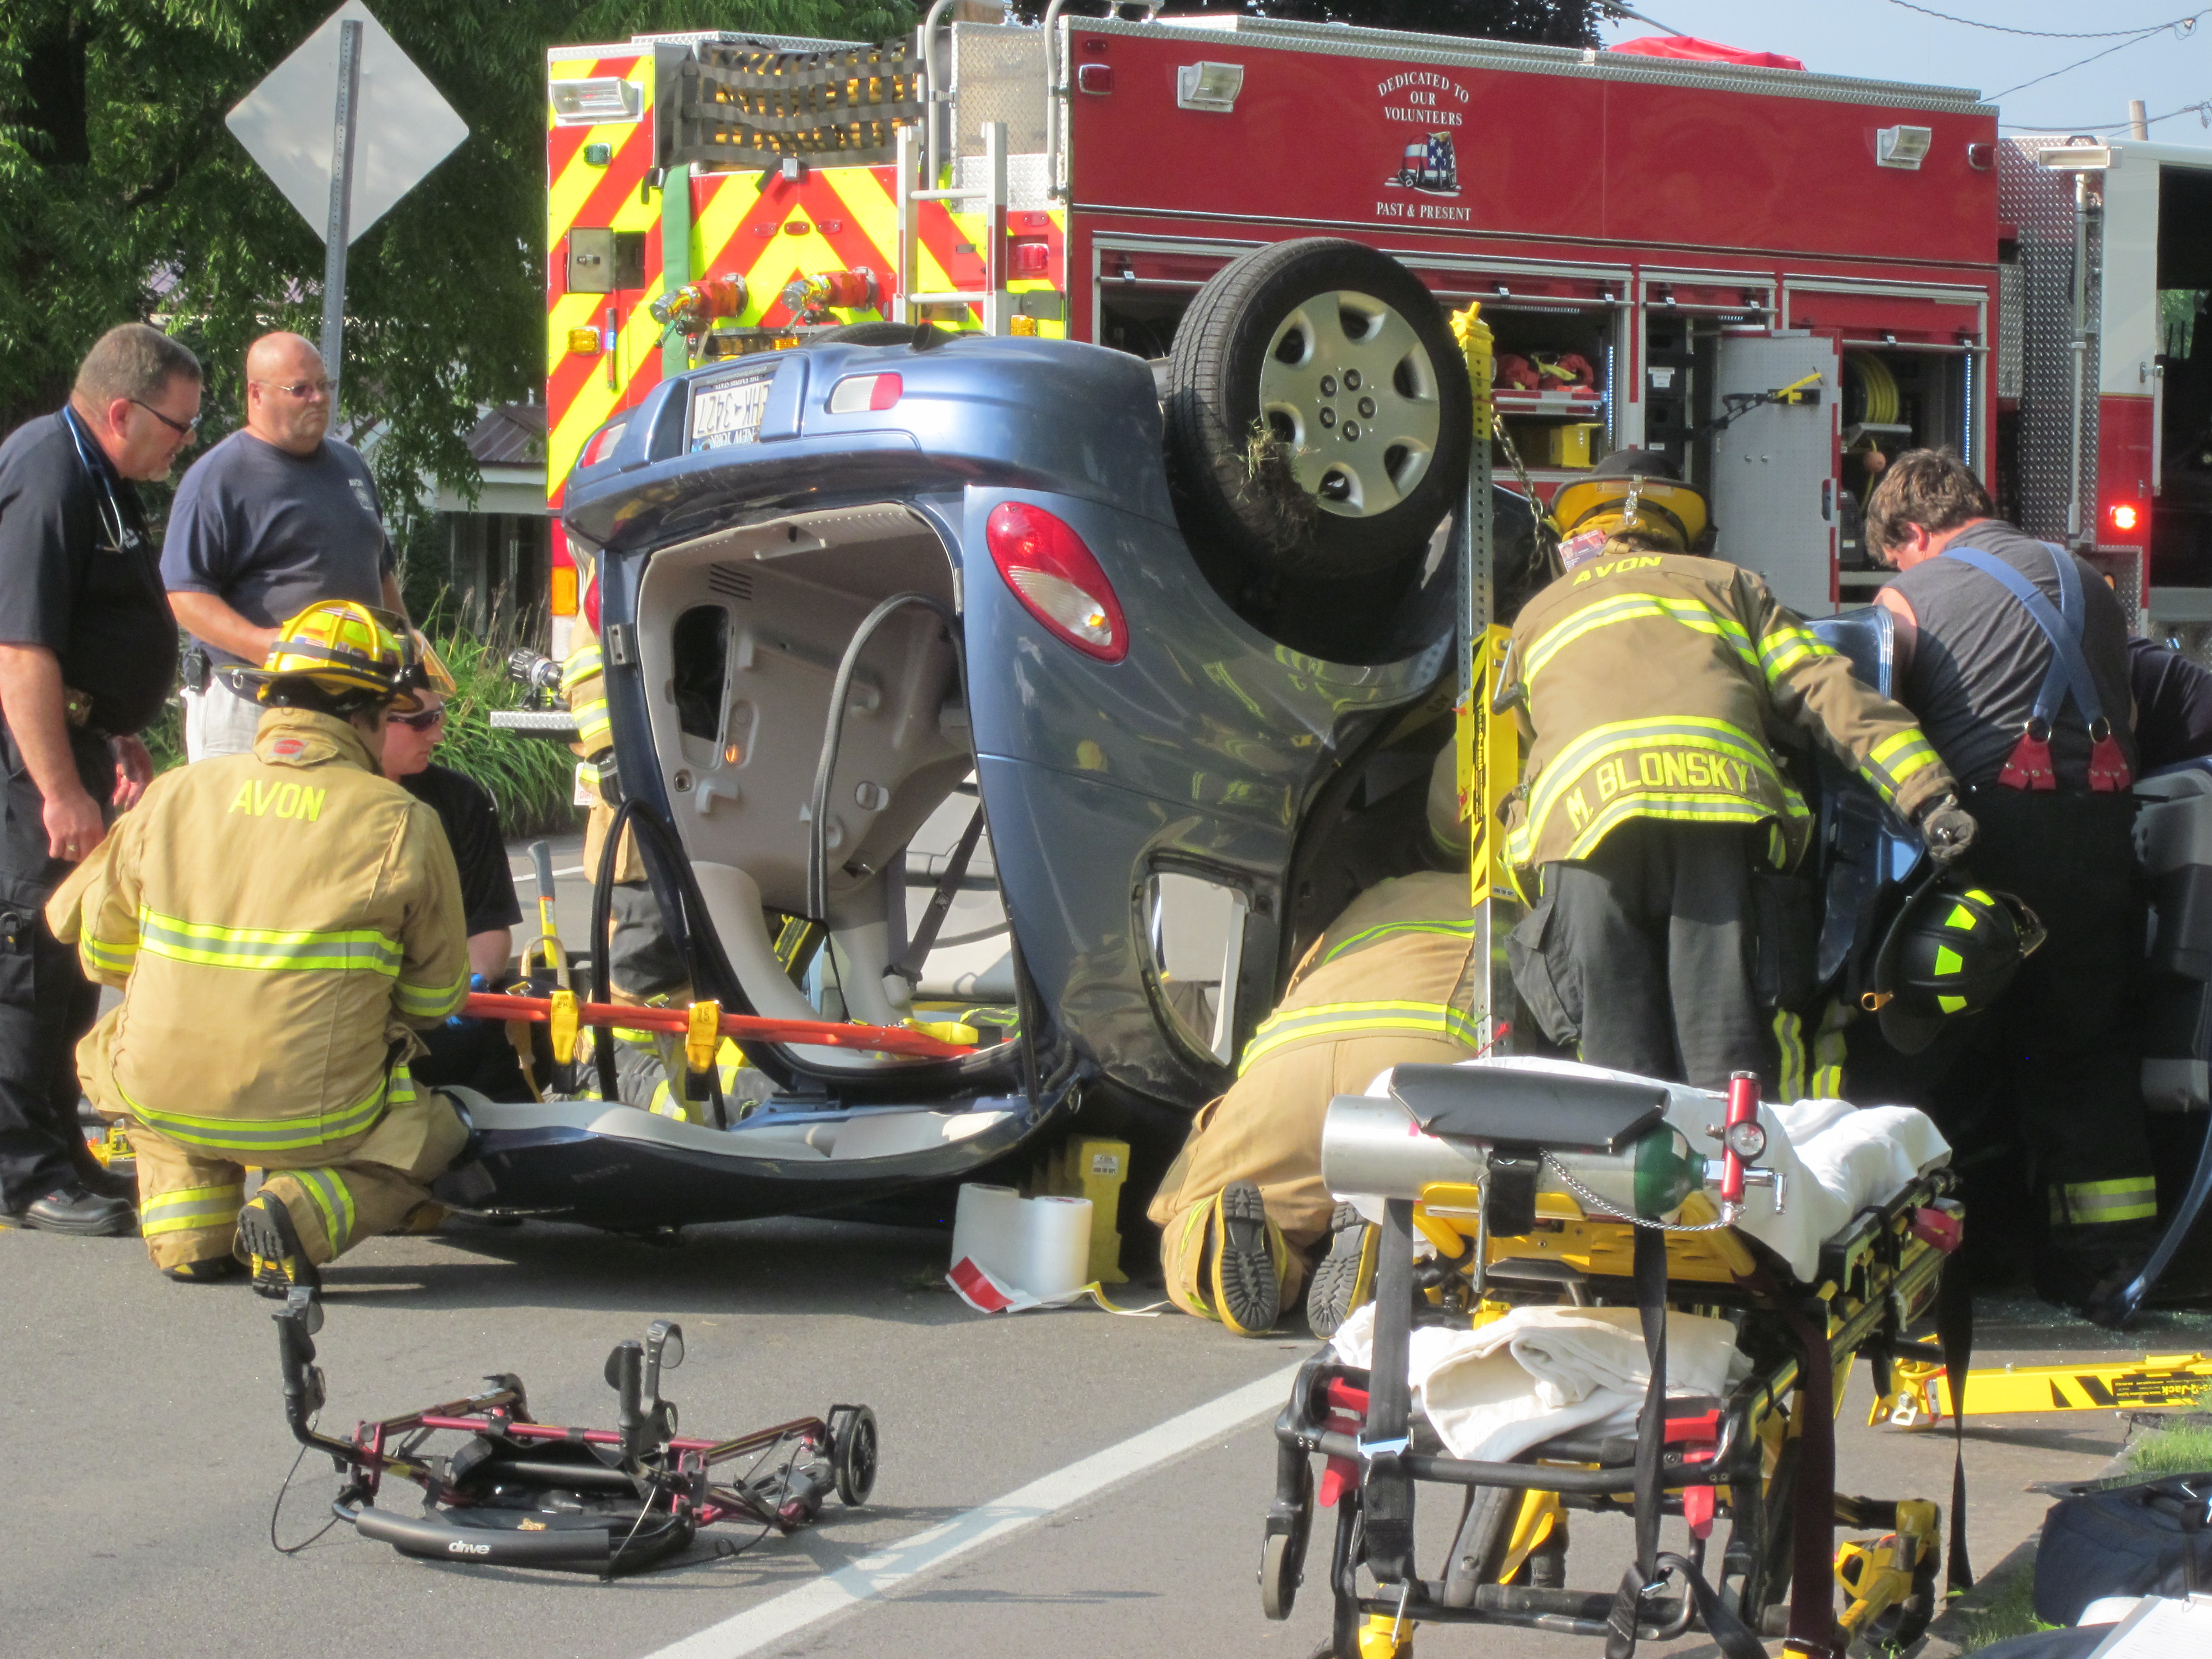 Elderly Person Escapes Serious Injury in Avon Rollover